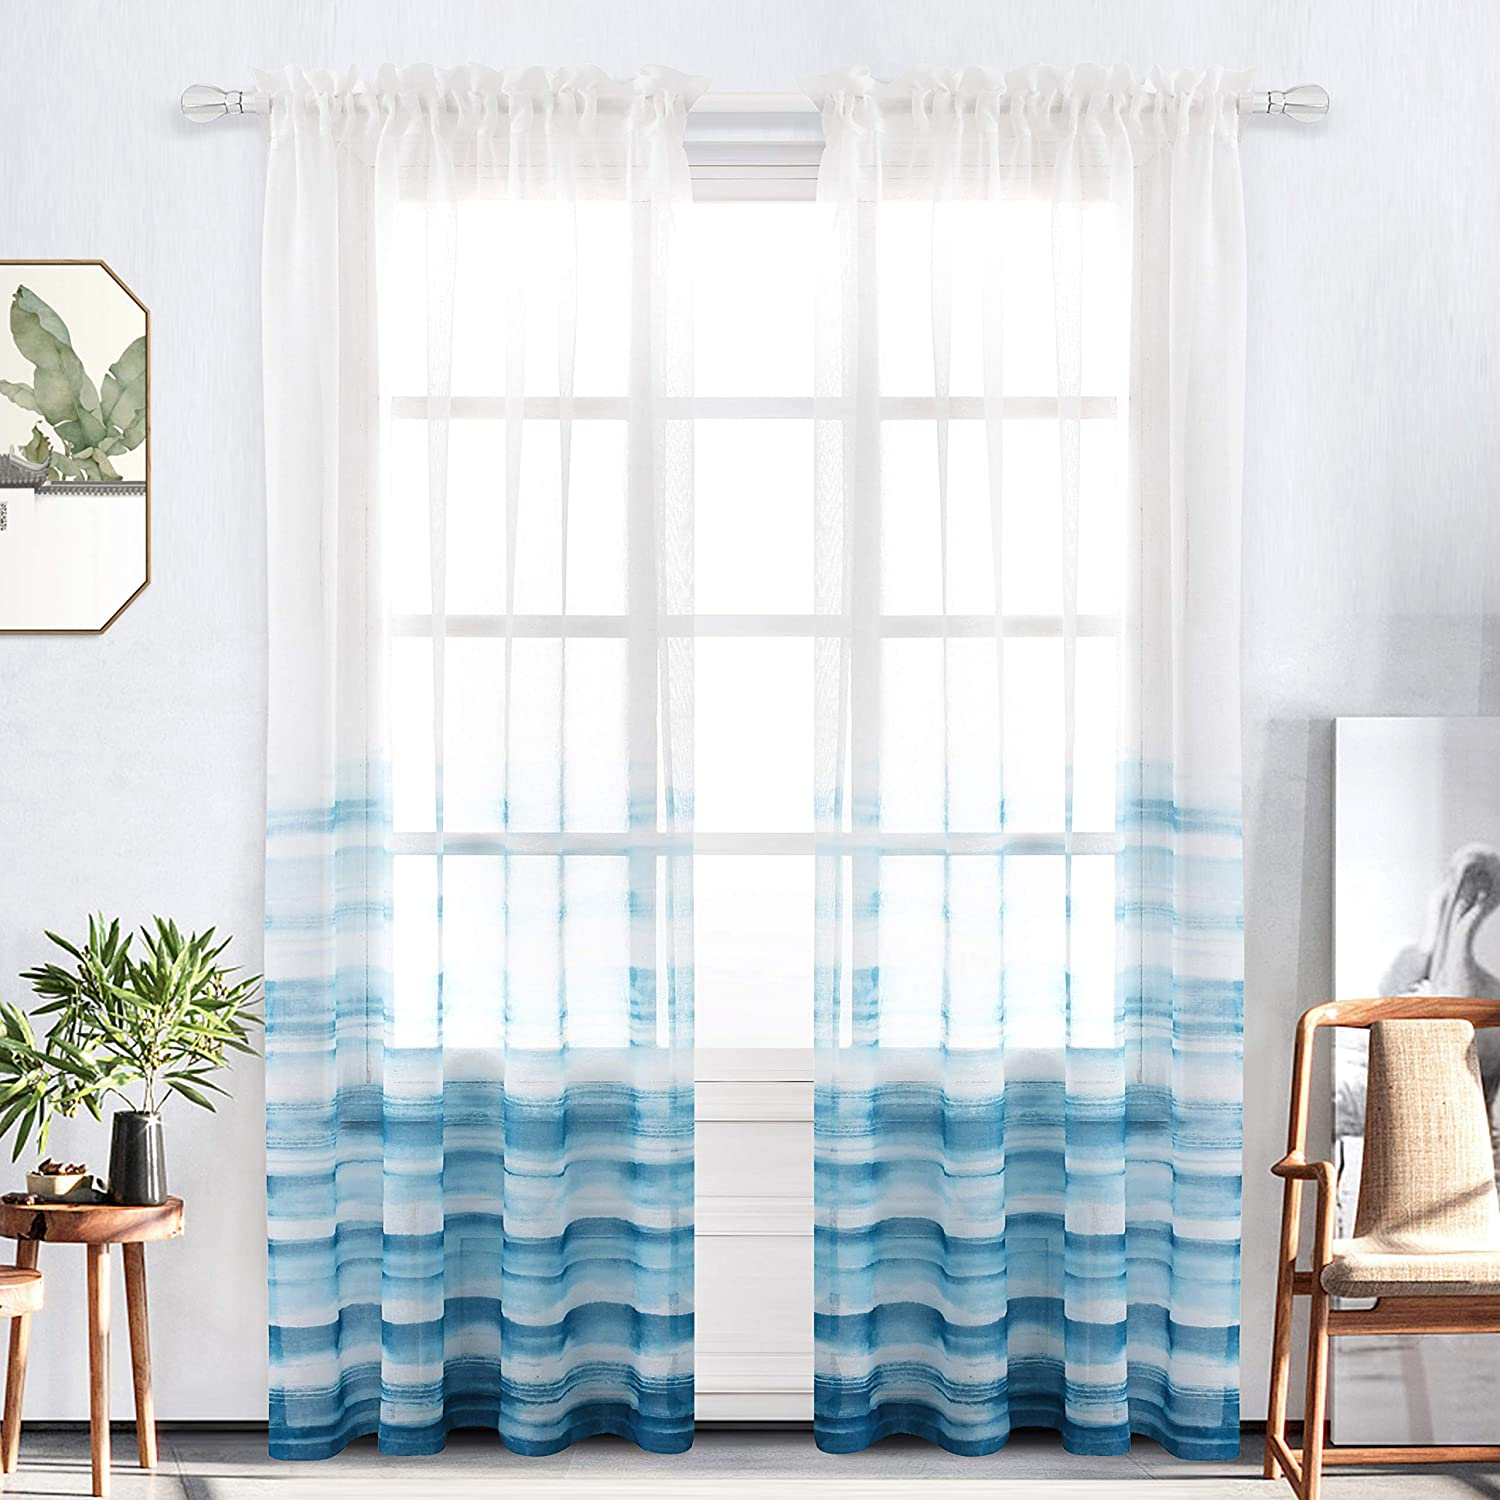 Bermino Faux Linen Sheer Curtains Voile Rod Pocket Semi Sheer Curtains for Bedroom Living Room Set of 2 Curtain Panels 54 x 84 inch Ink Blue Gradient